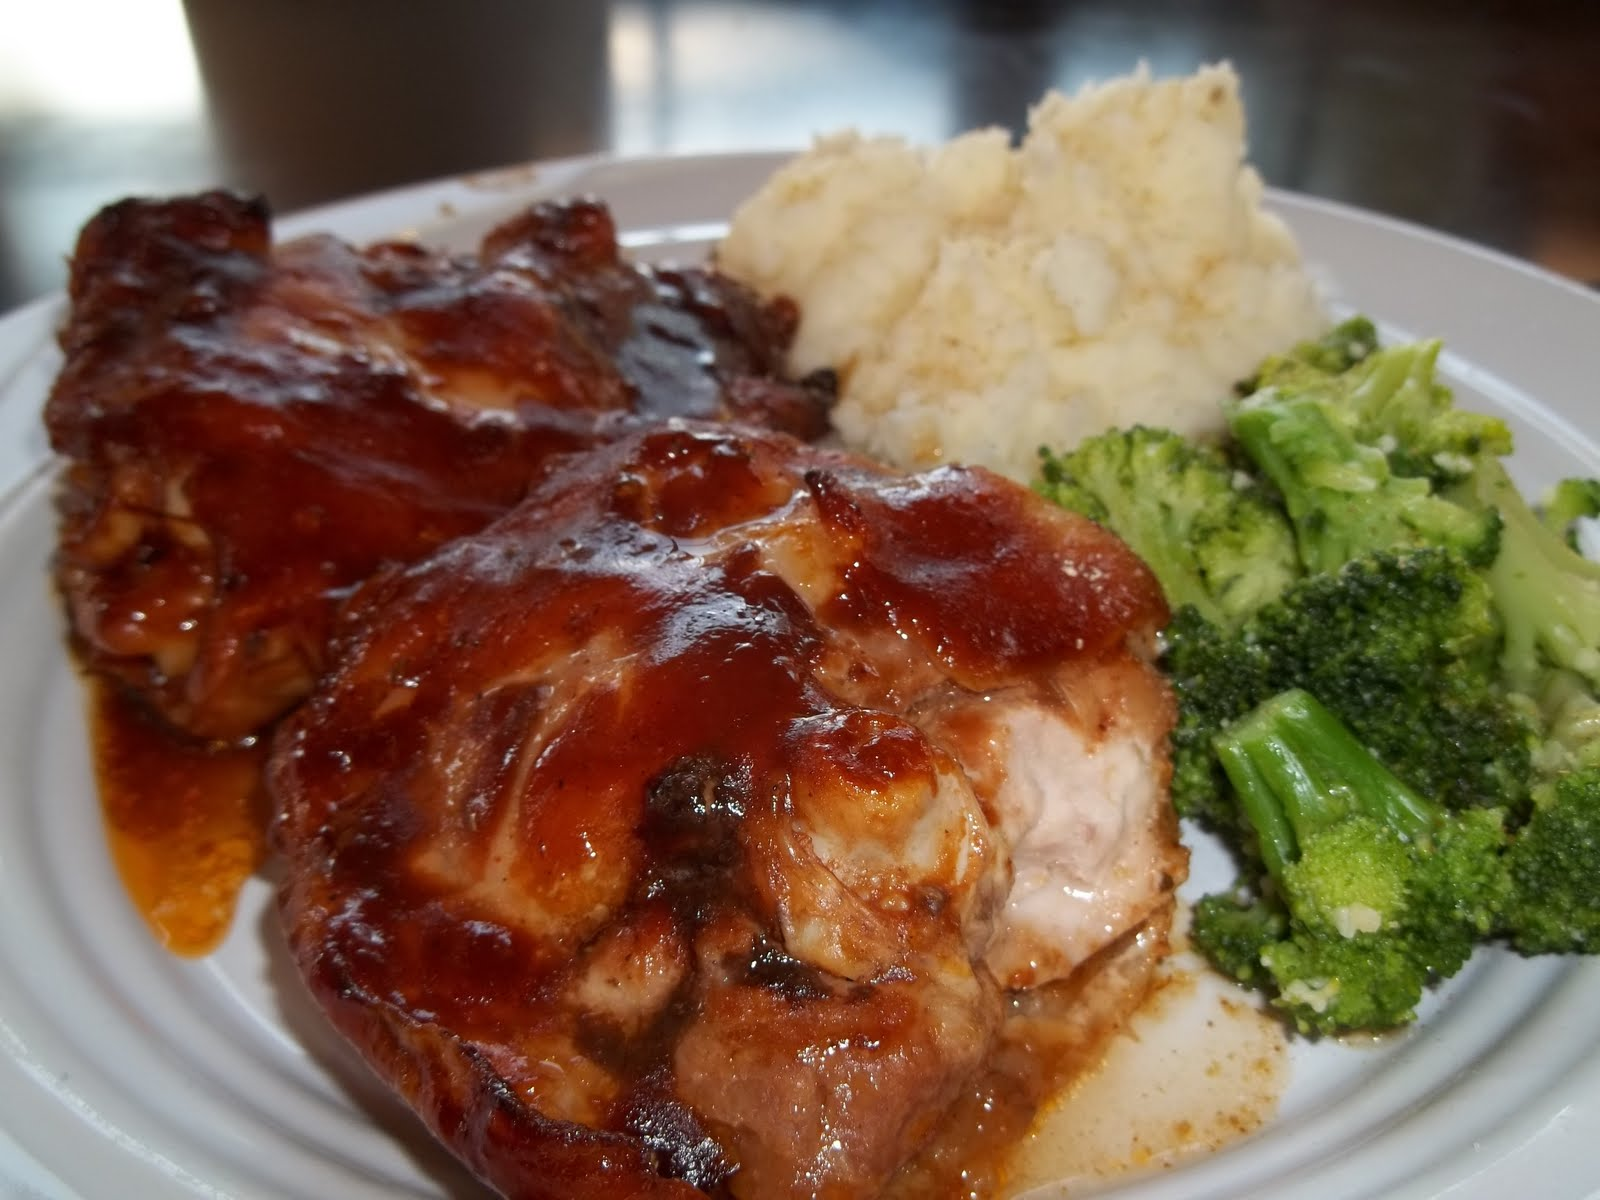 Kristi's Dishes: Oven Baked BBQ Chicken